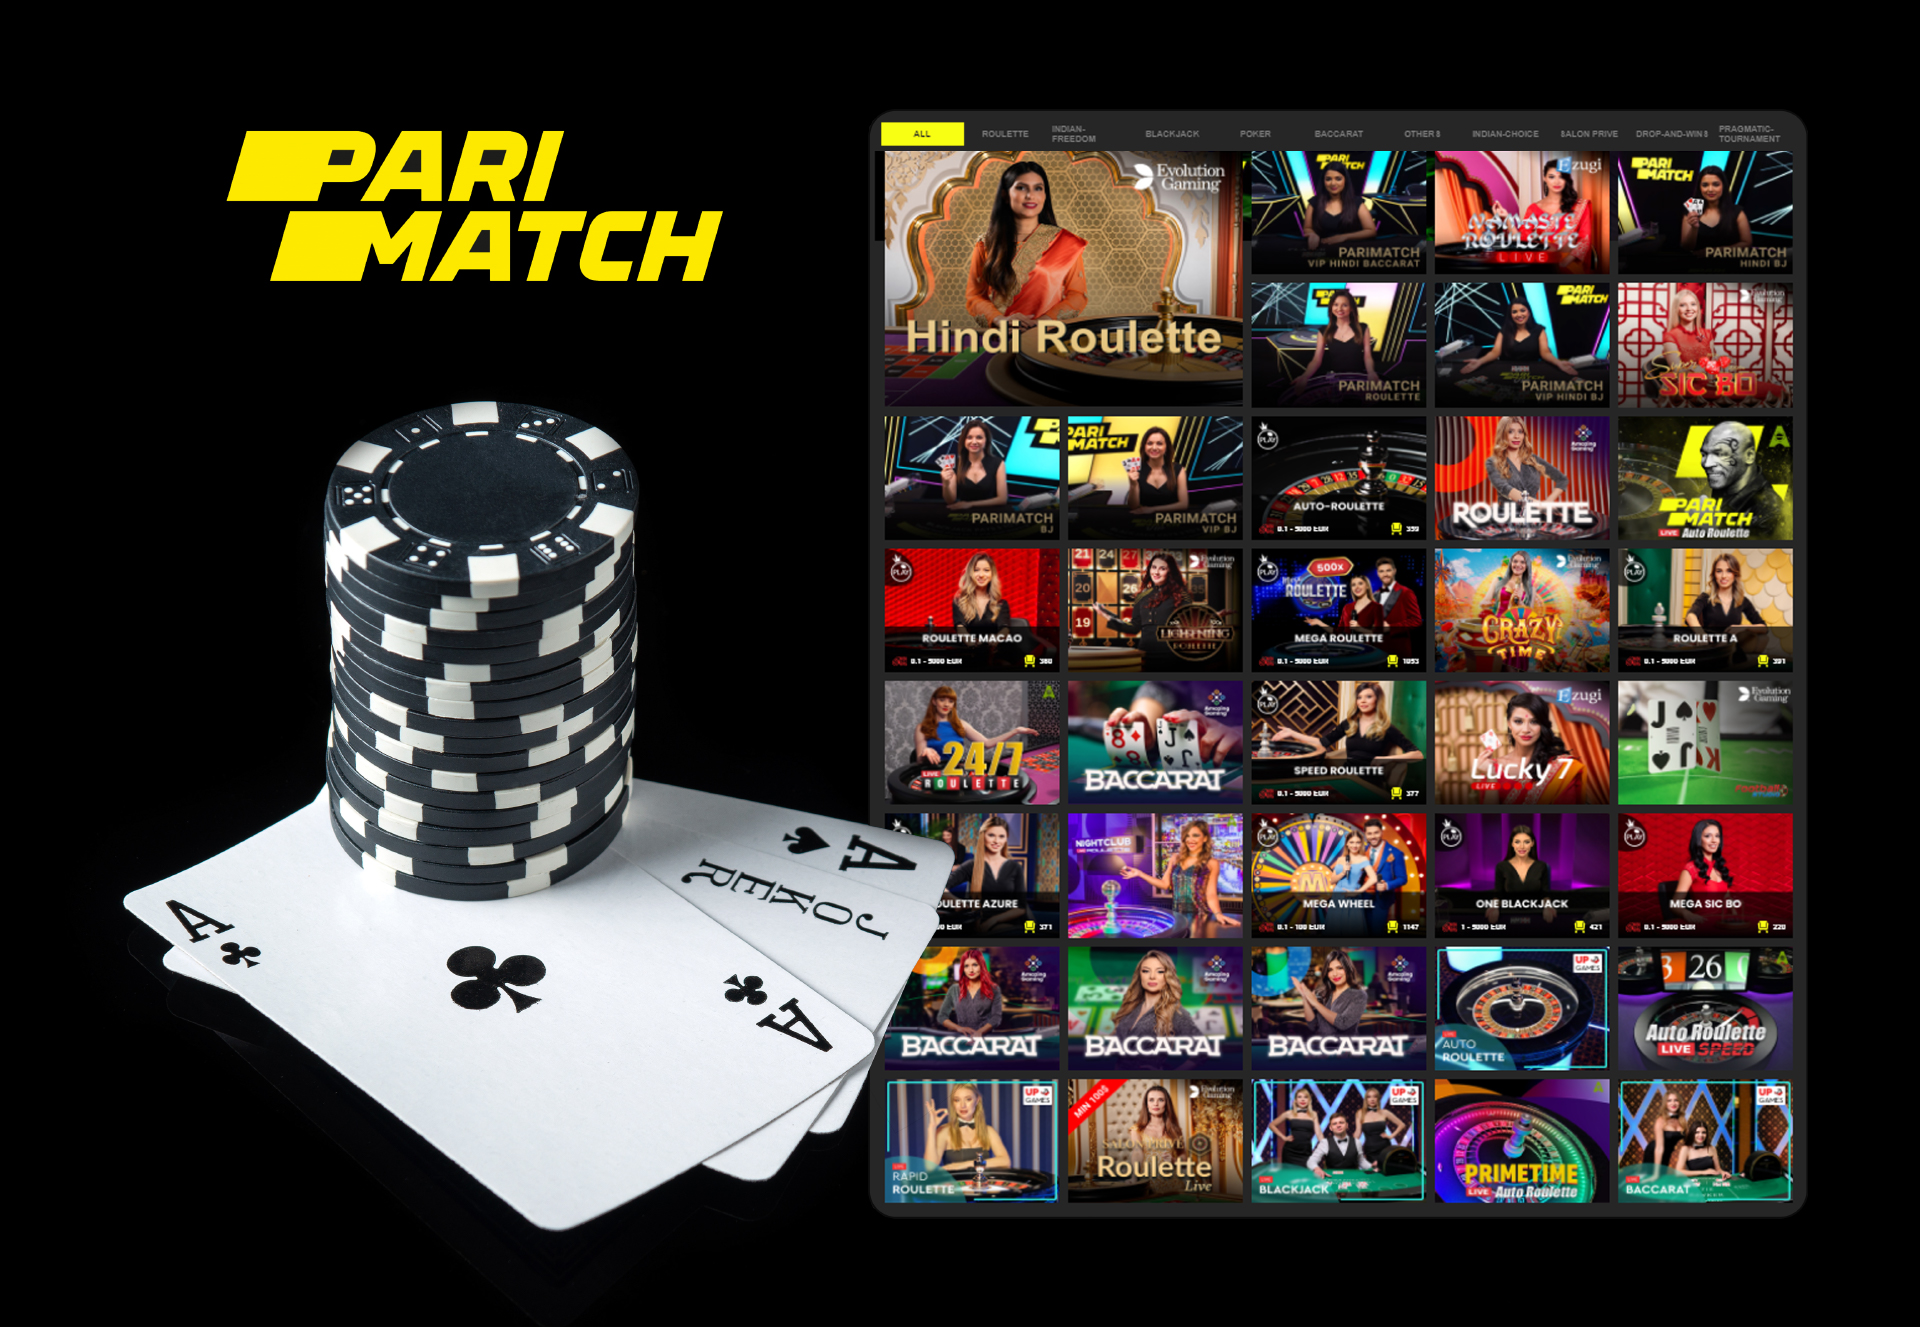 If you also like playing games, visit the section of Parimatch Casino.